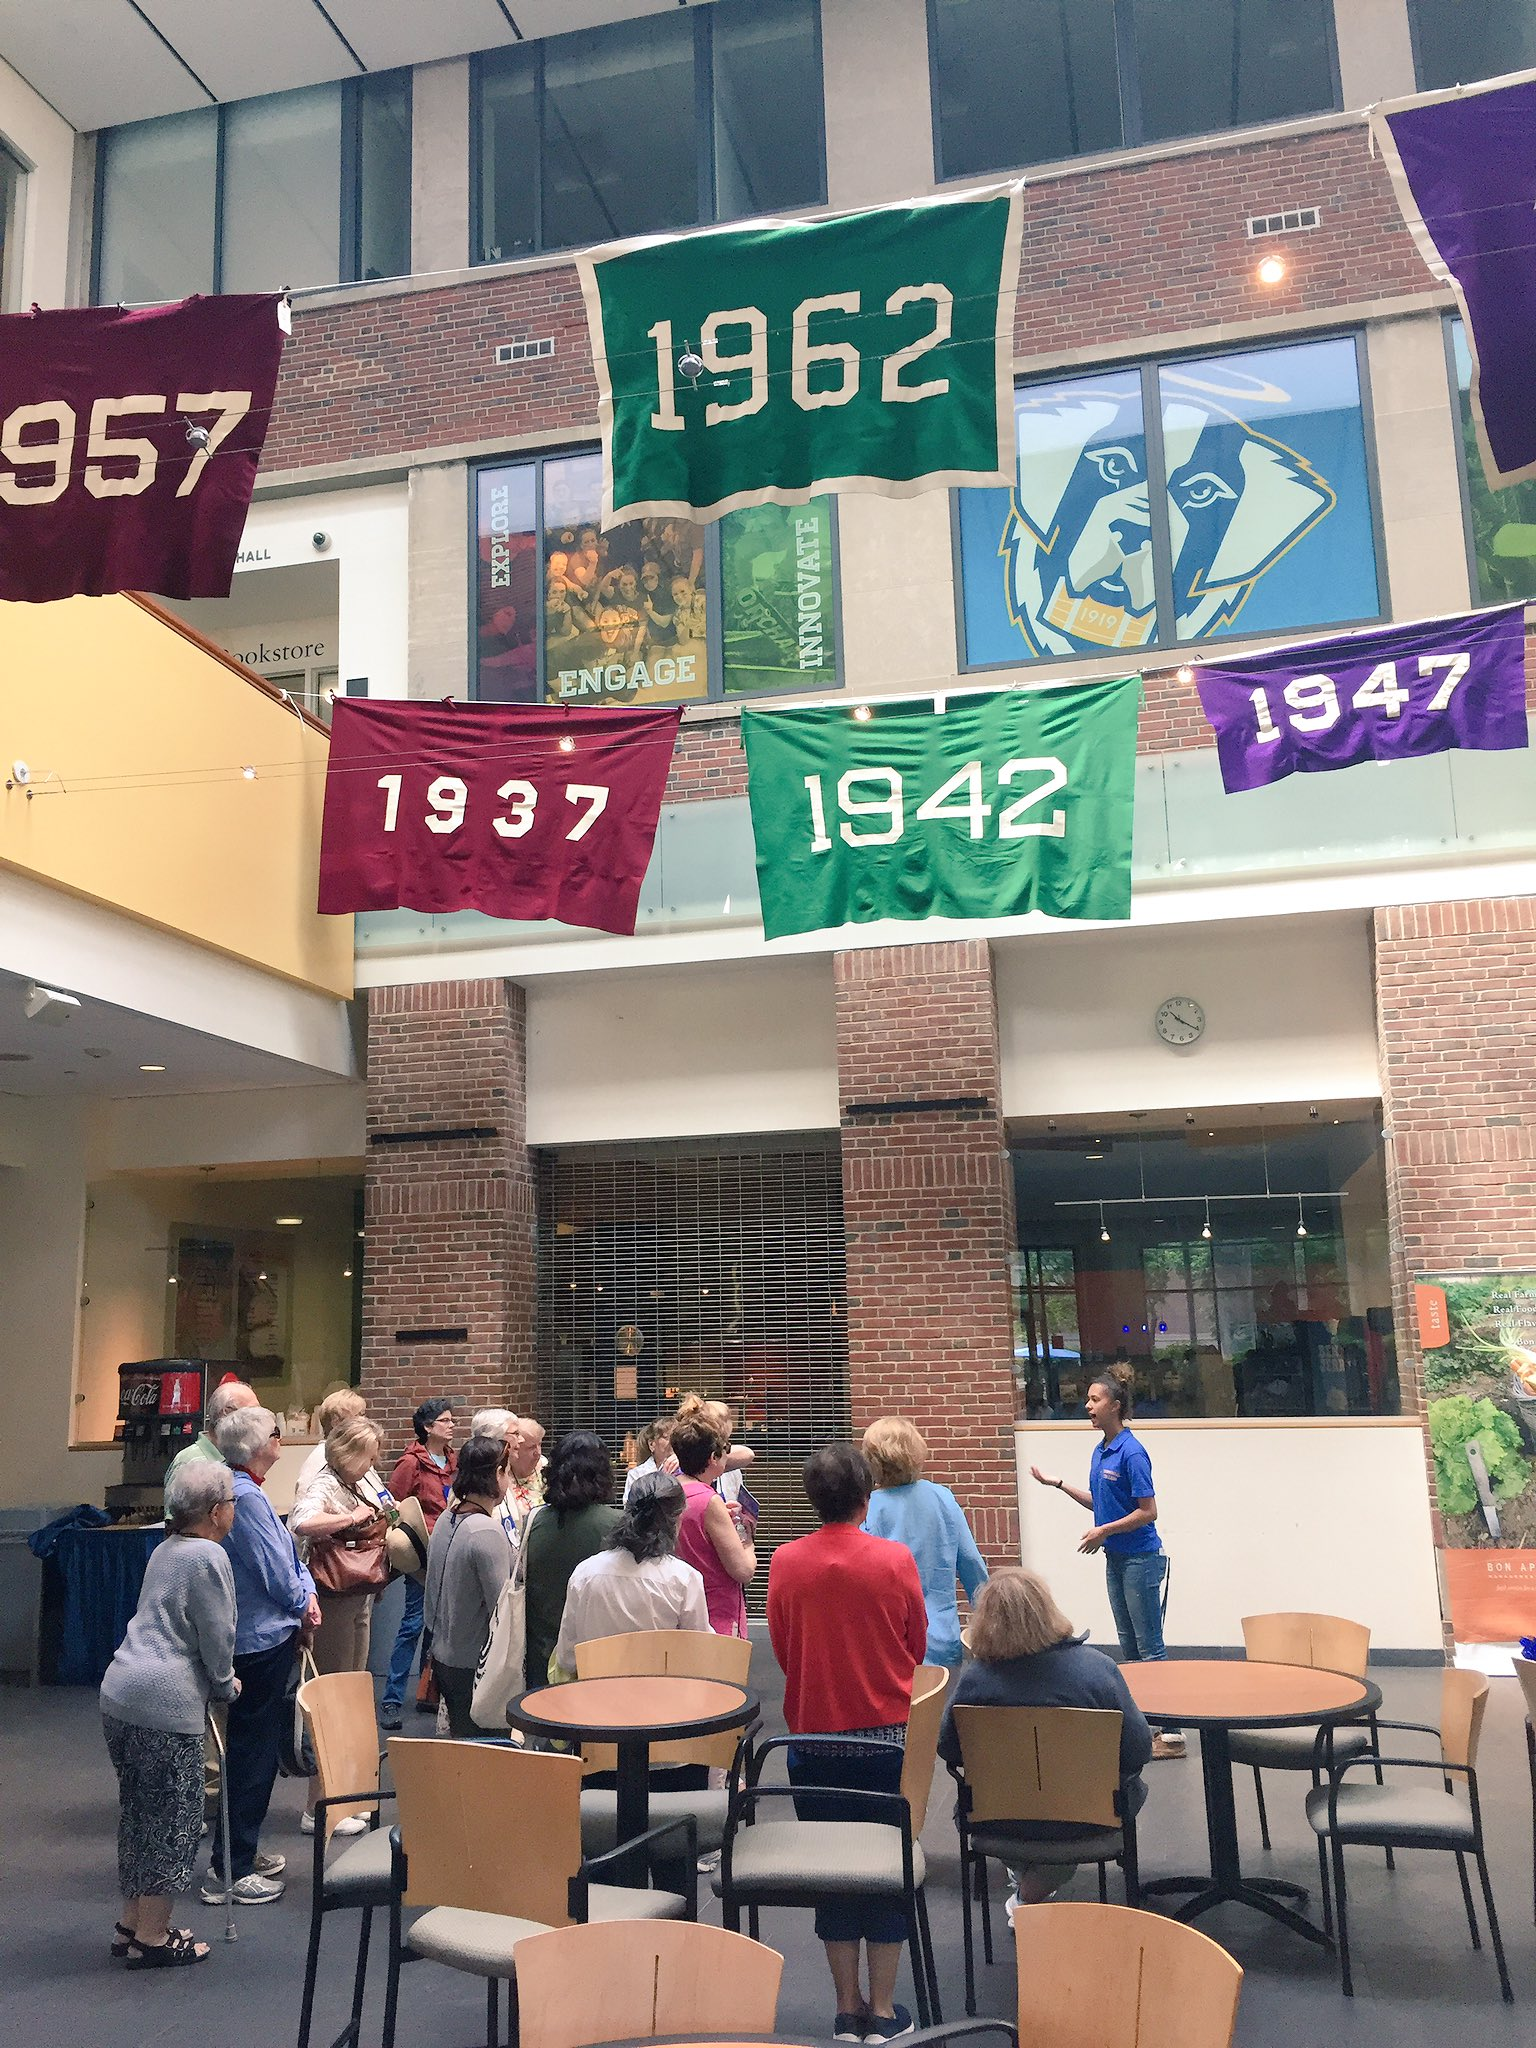 Join a student-led campus tour and see what's changed and what's stayed the same. Next tour at 1:30. #ECReunion https://t.co/GTr6rCmQV6 https://t.co/oVe3WeNWw9